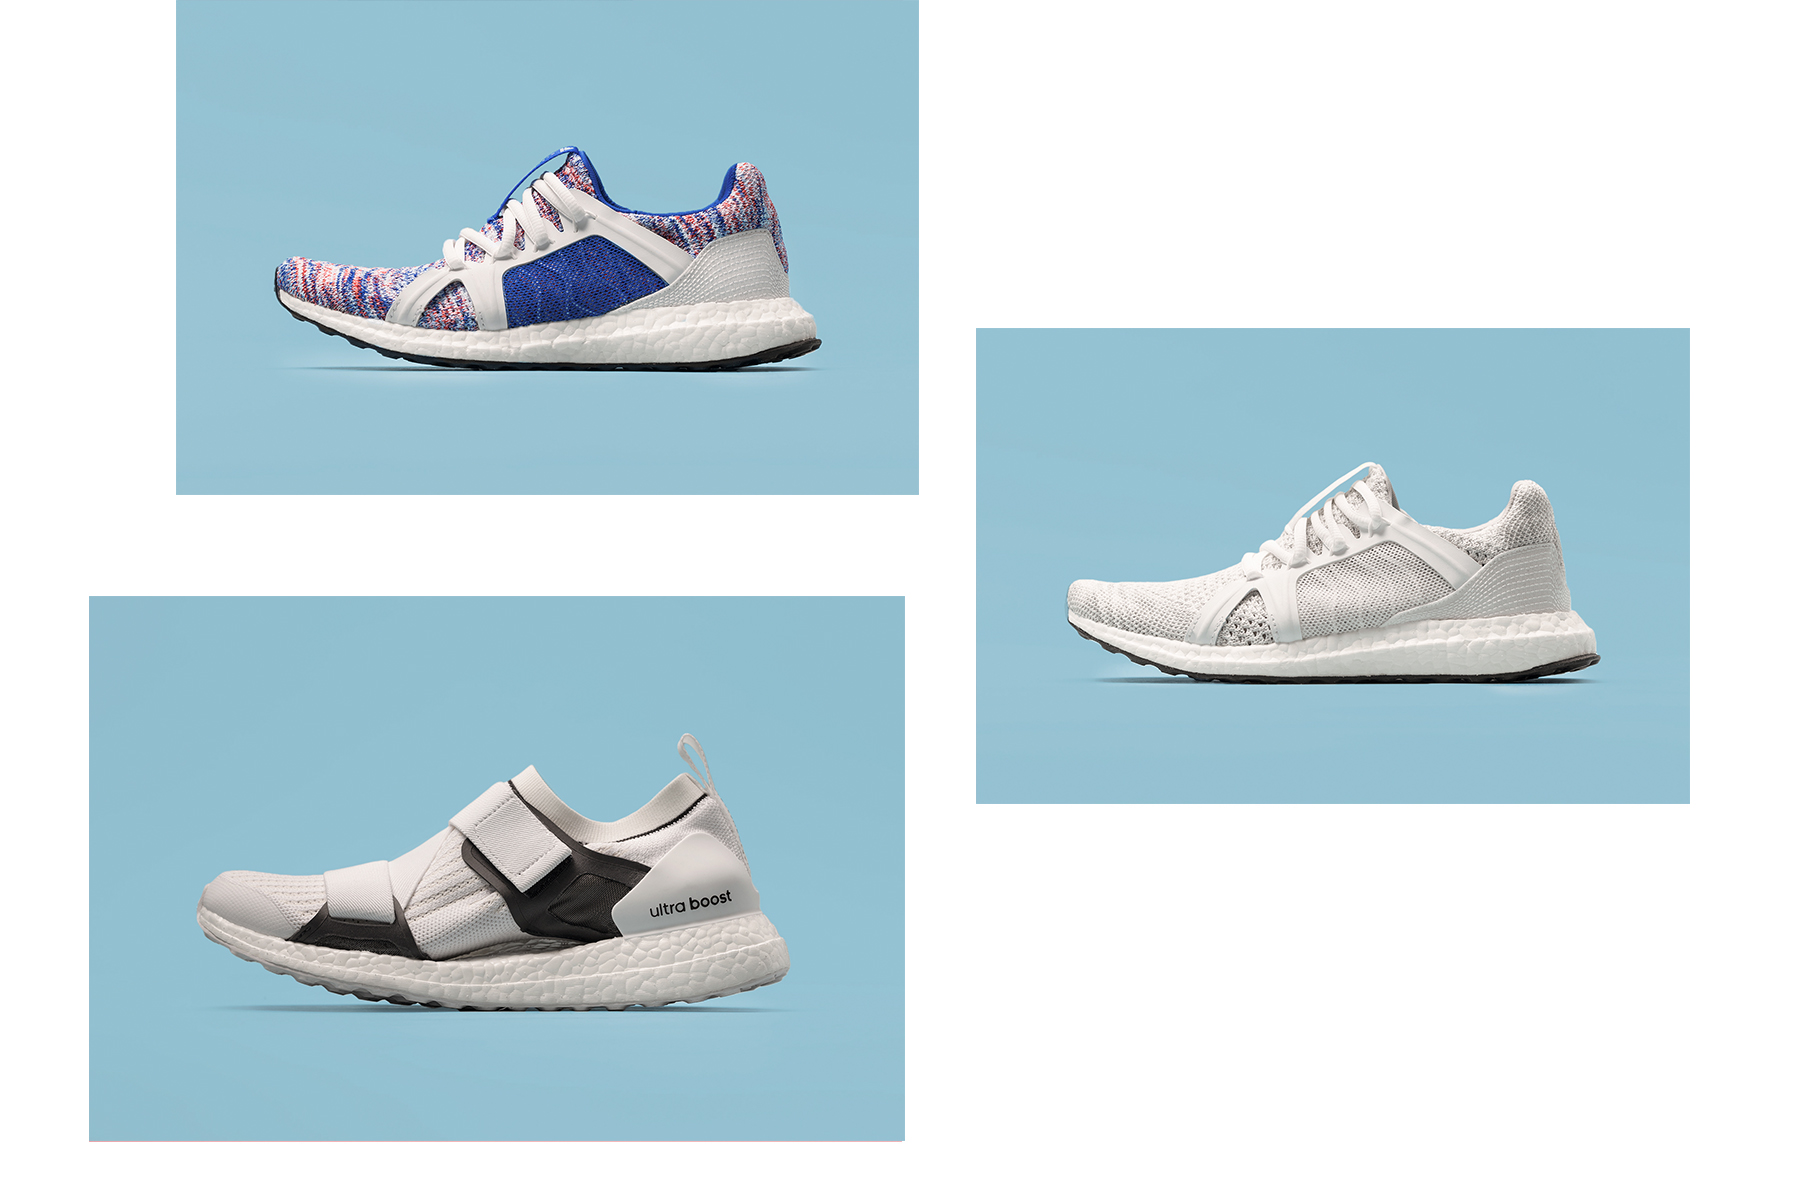 fc0160964 adidas by Stella McCartney Parley UltraBOOST X New Colorways Purple White  Grey Black Sustainable Footwear